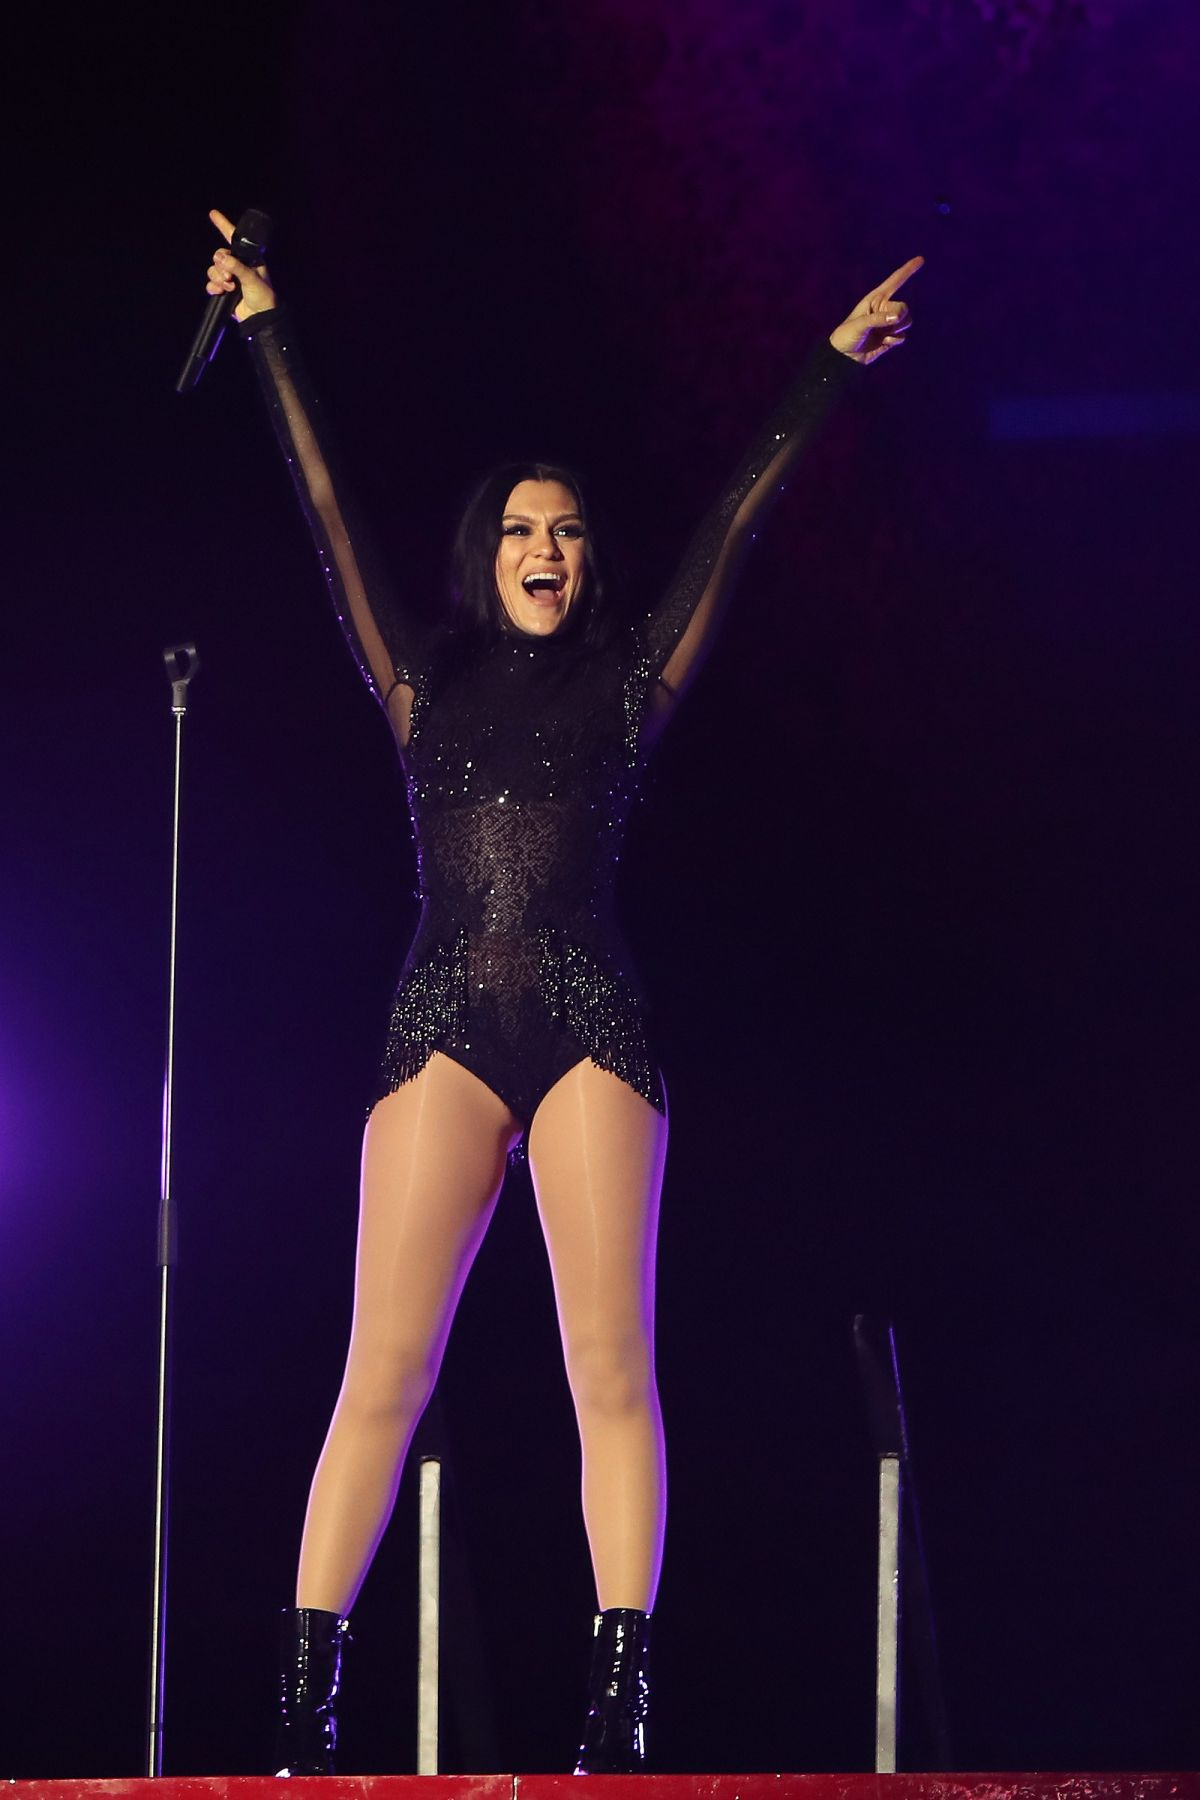 Jessie J Performs At The Rock In Rio Lisboa Music Festival